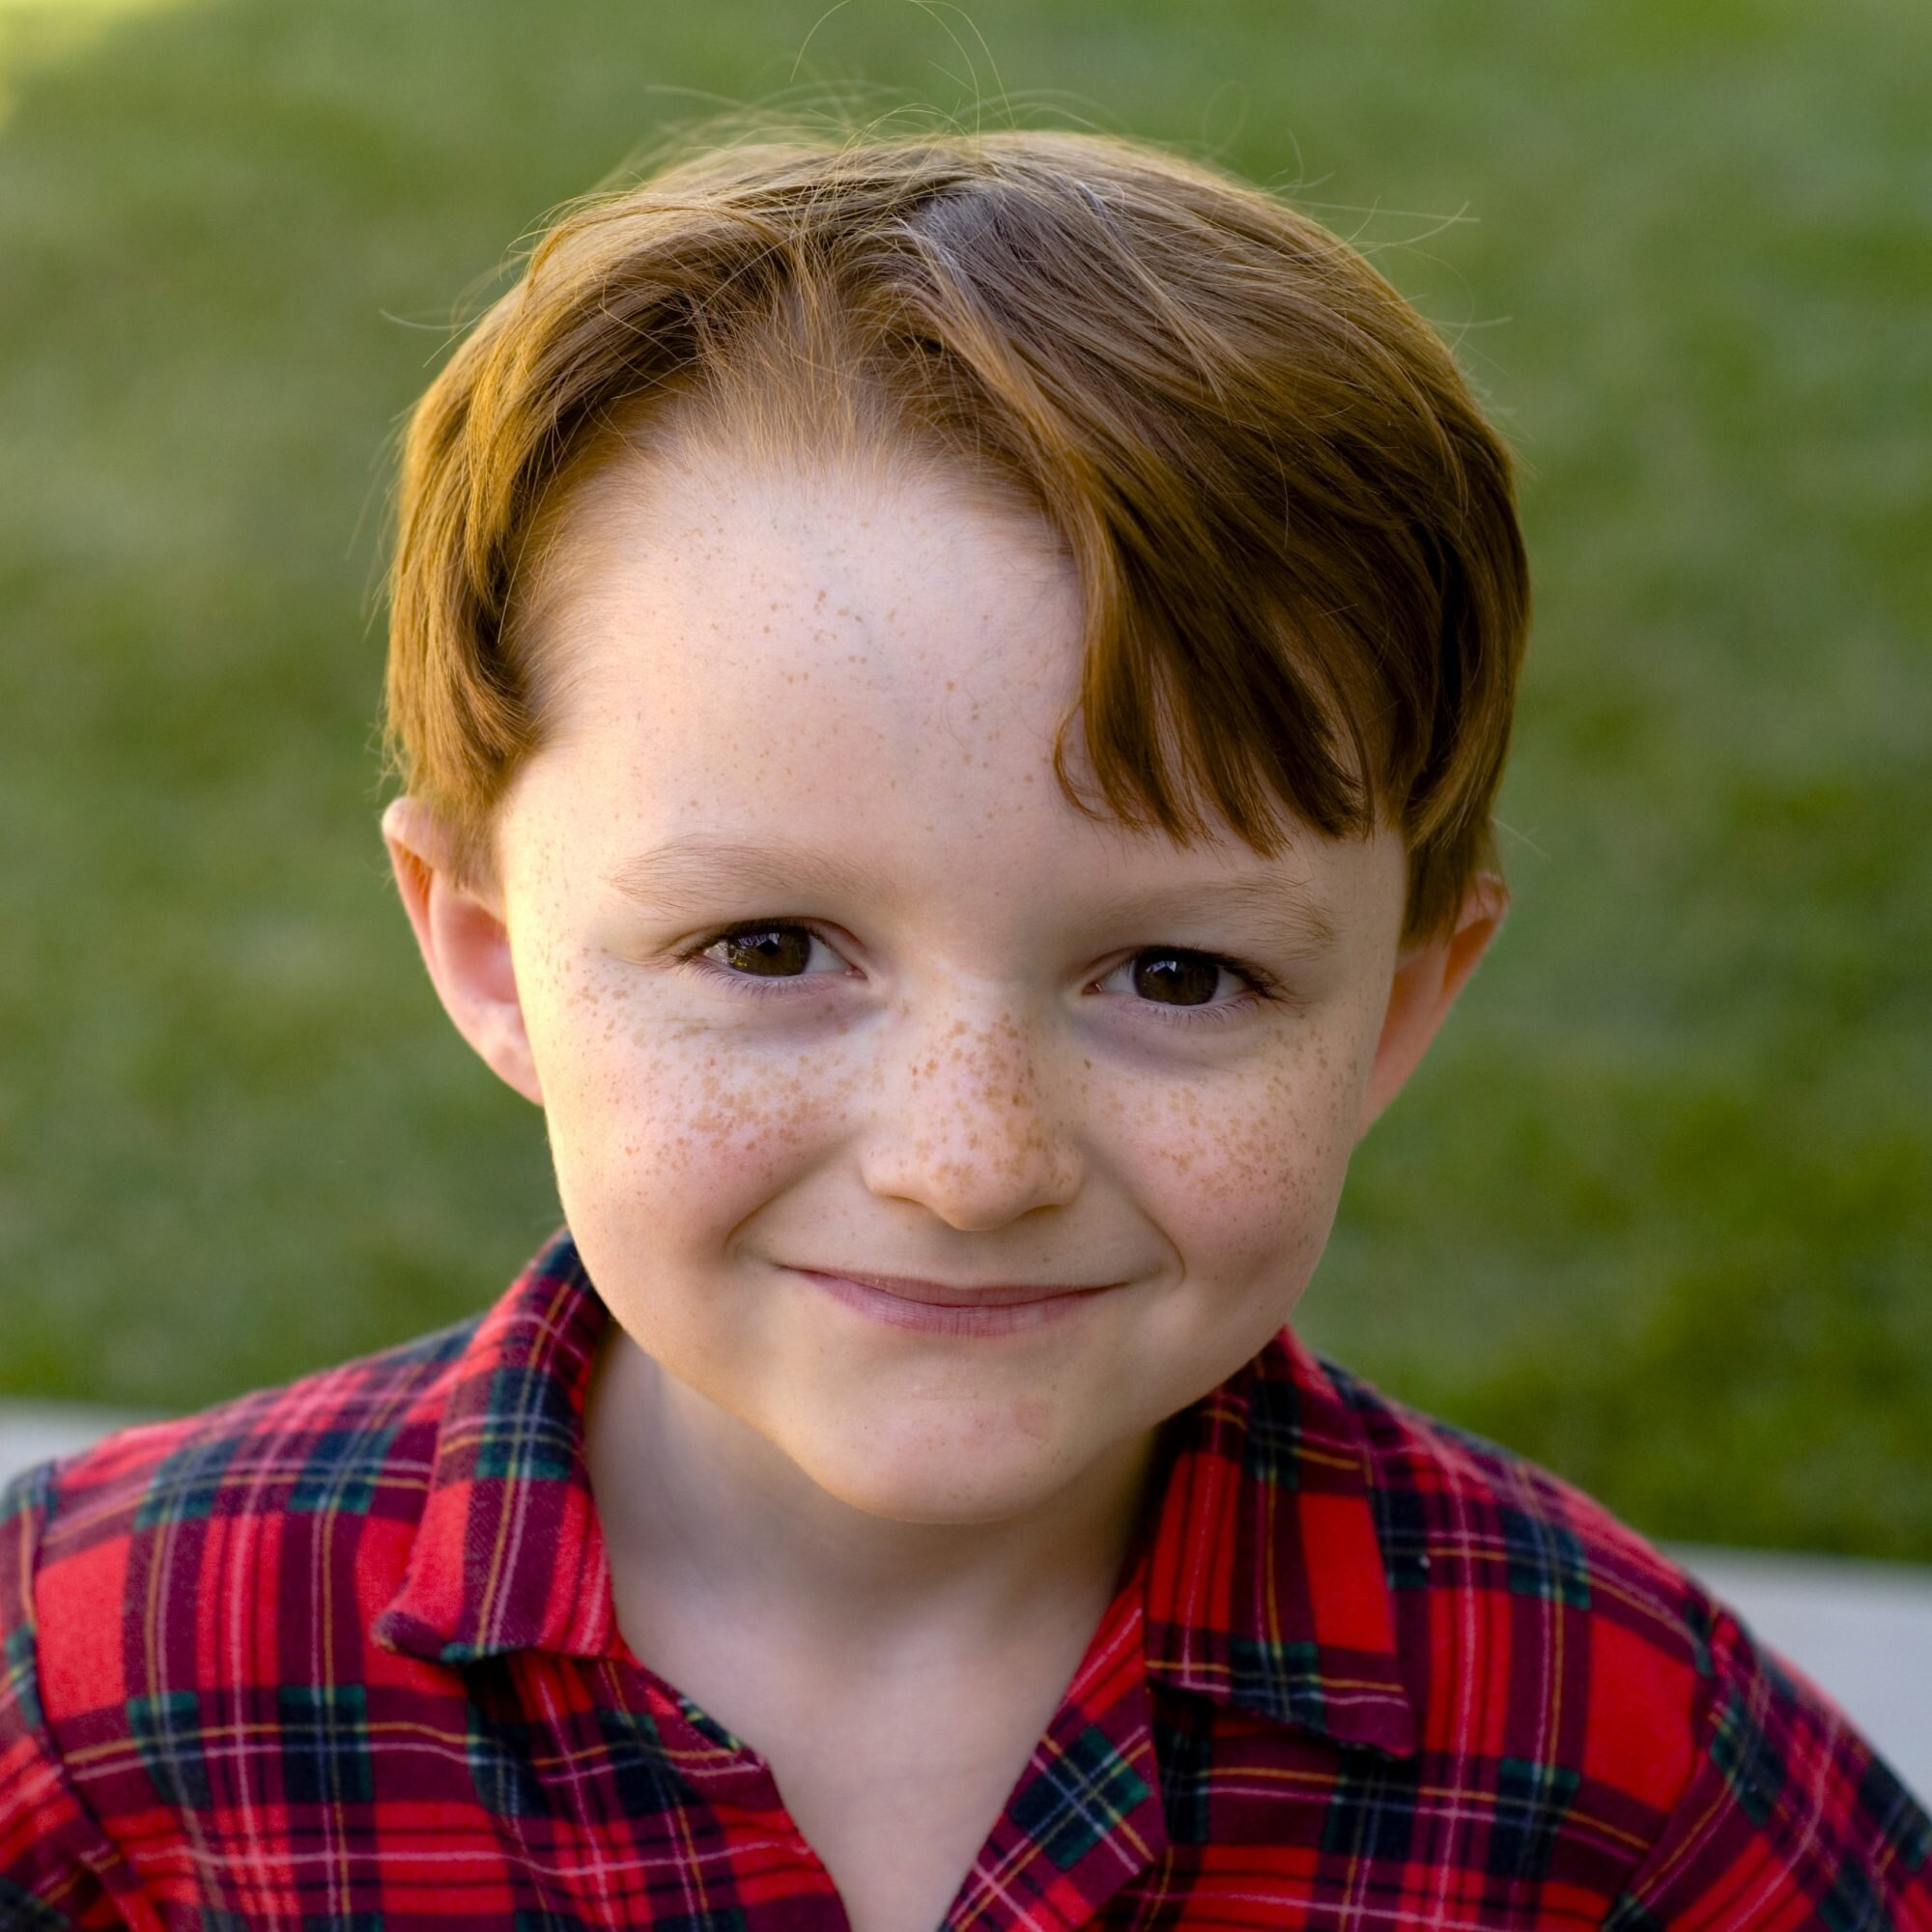 20 Boys Haircuts Perfect For Your